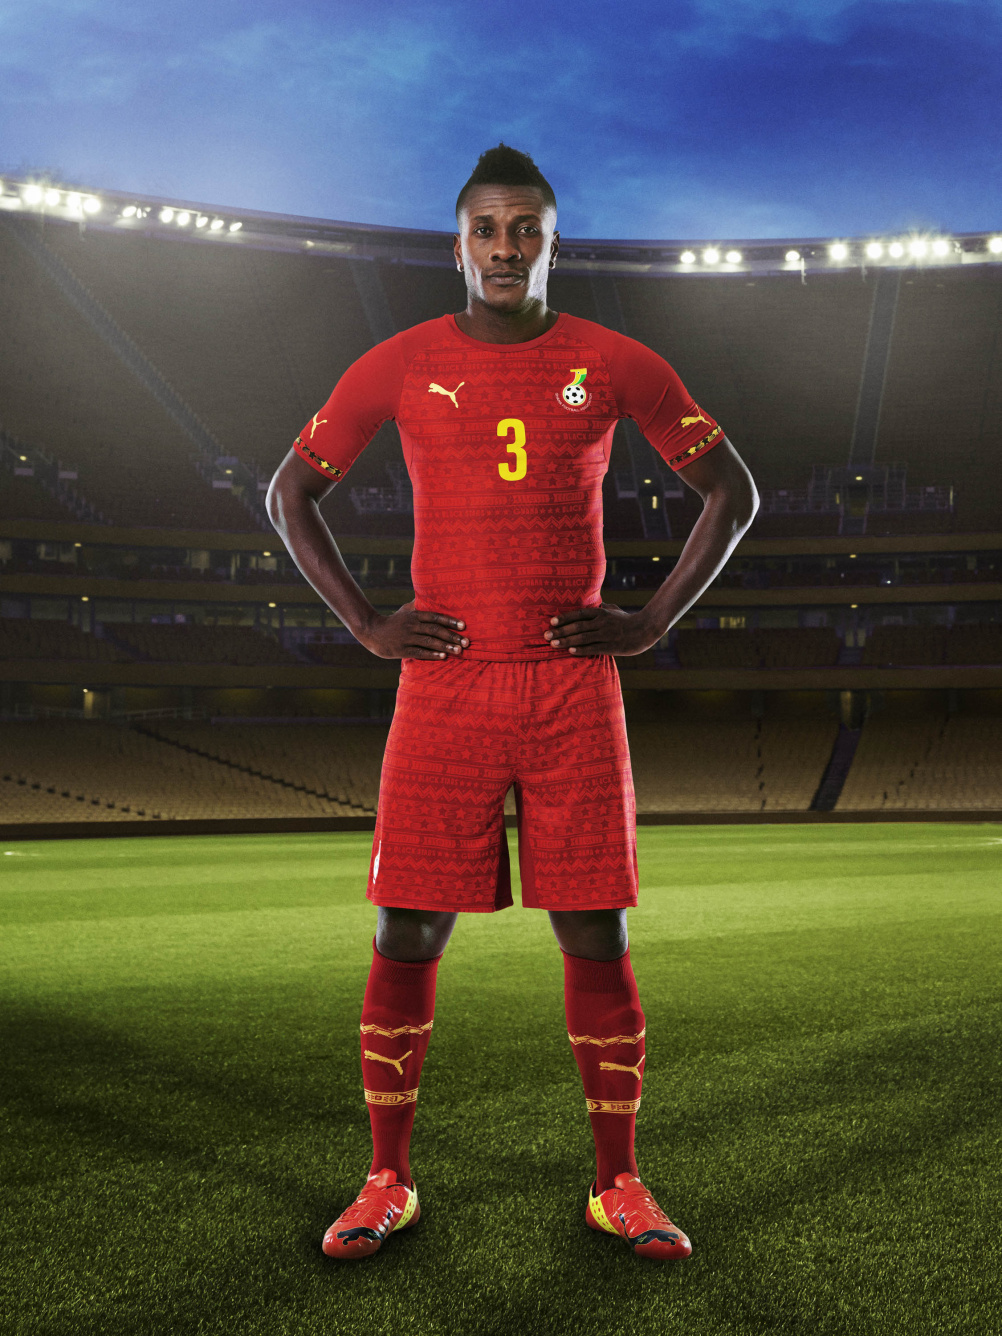 Ghana home shirt modelled by captain Asamoah Gyan